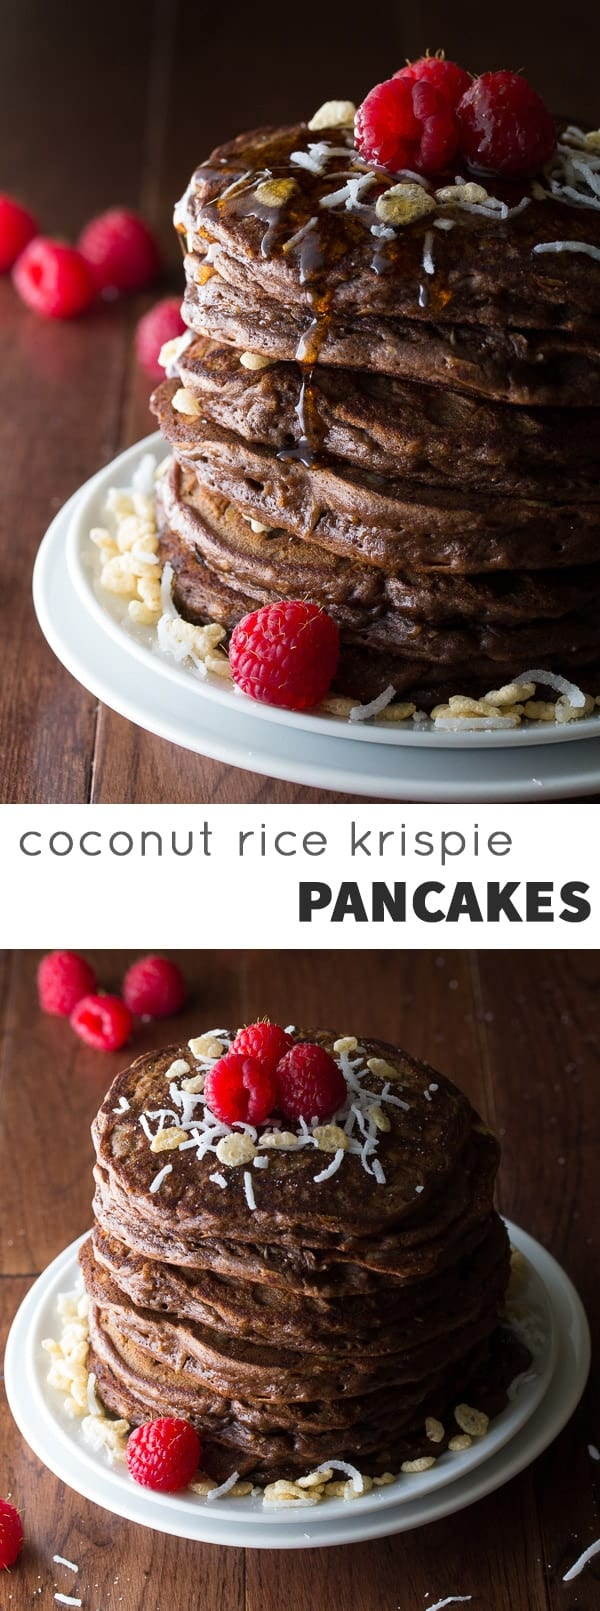 Coconut Chocolate Rice Krispie Pancakes